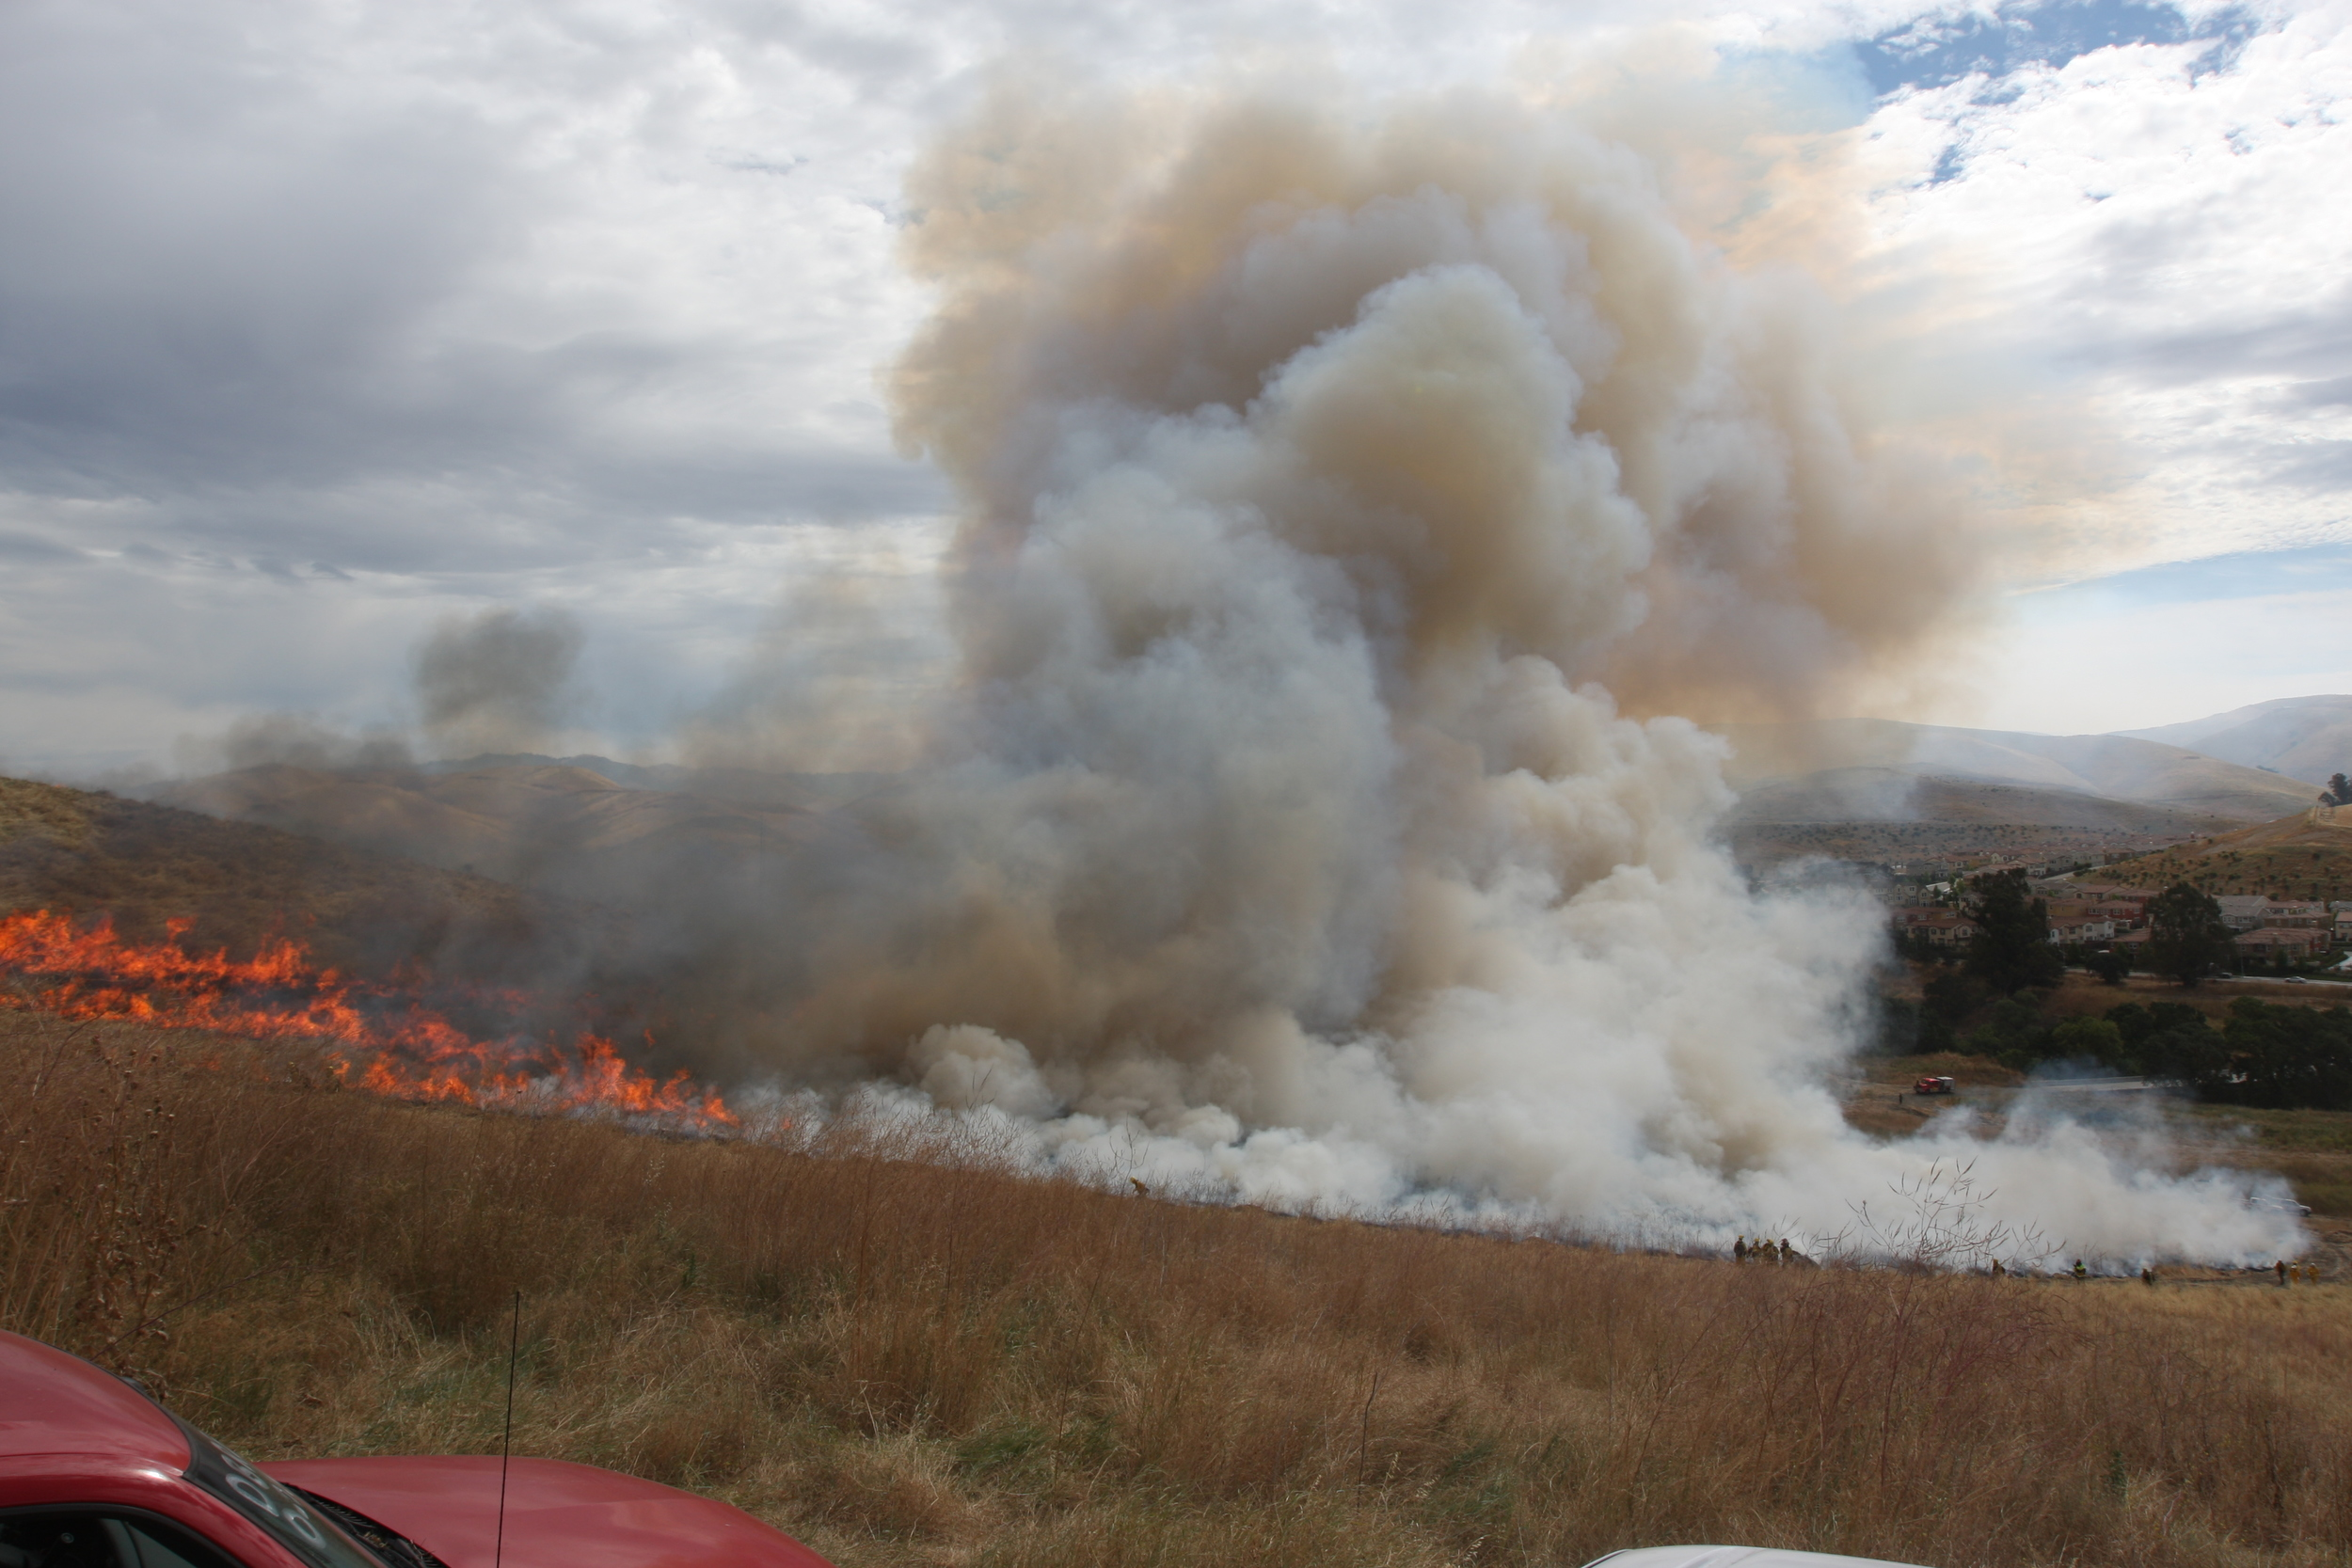 Prescribed fire experiment at camp parks, Ca July 2010. Ignition by Marin County fire crew.